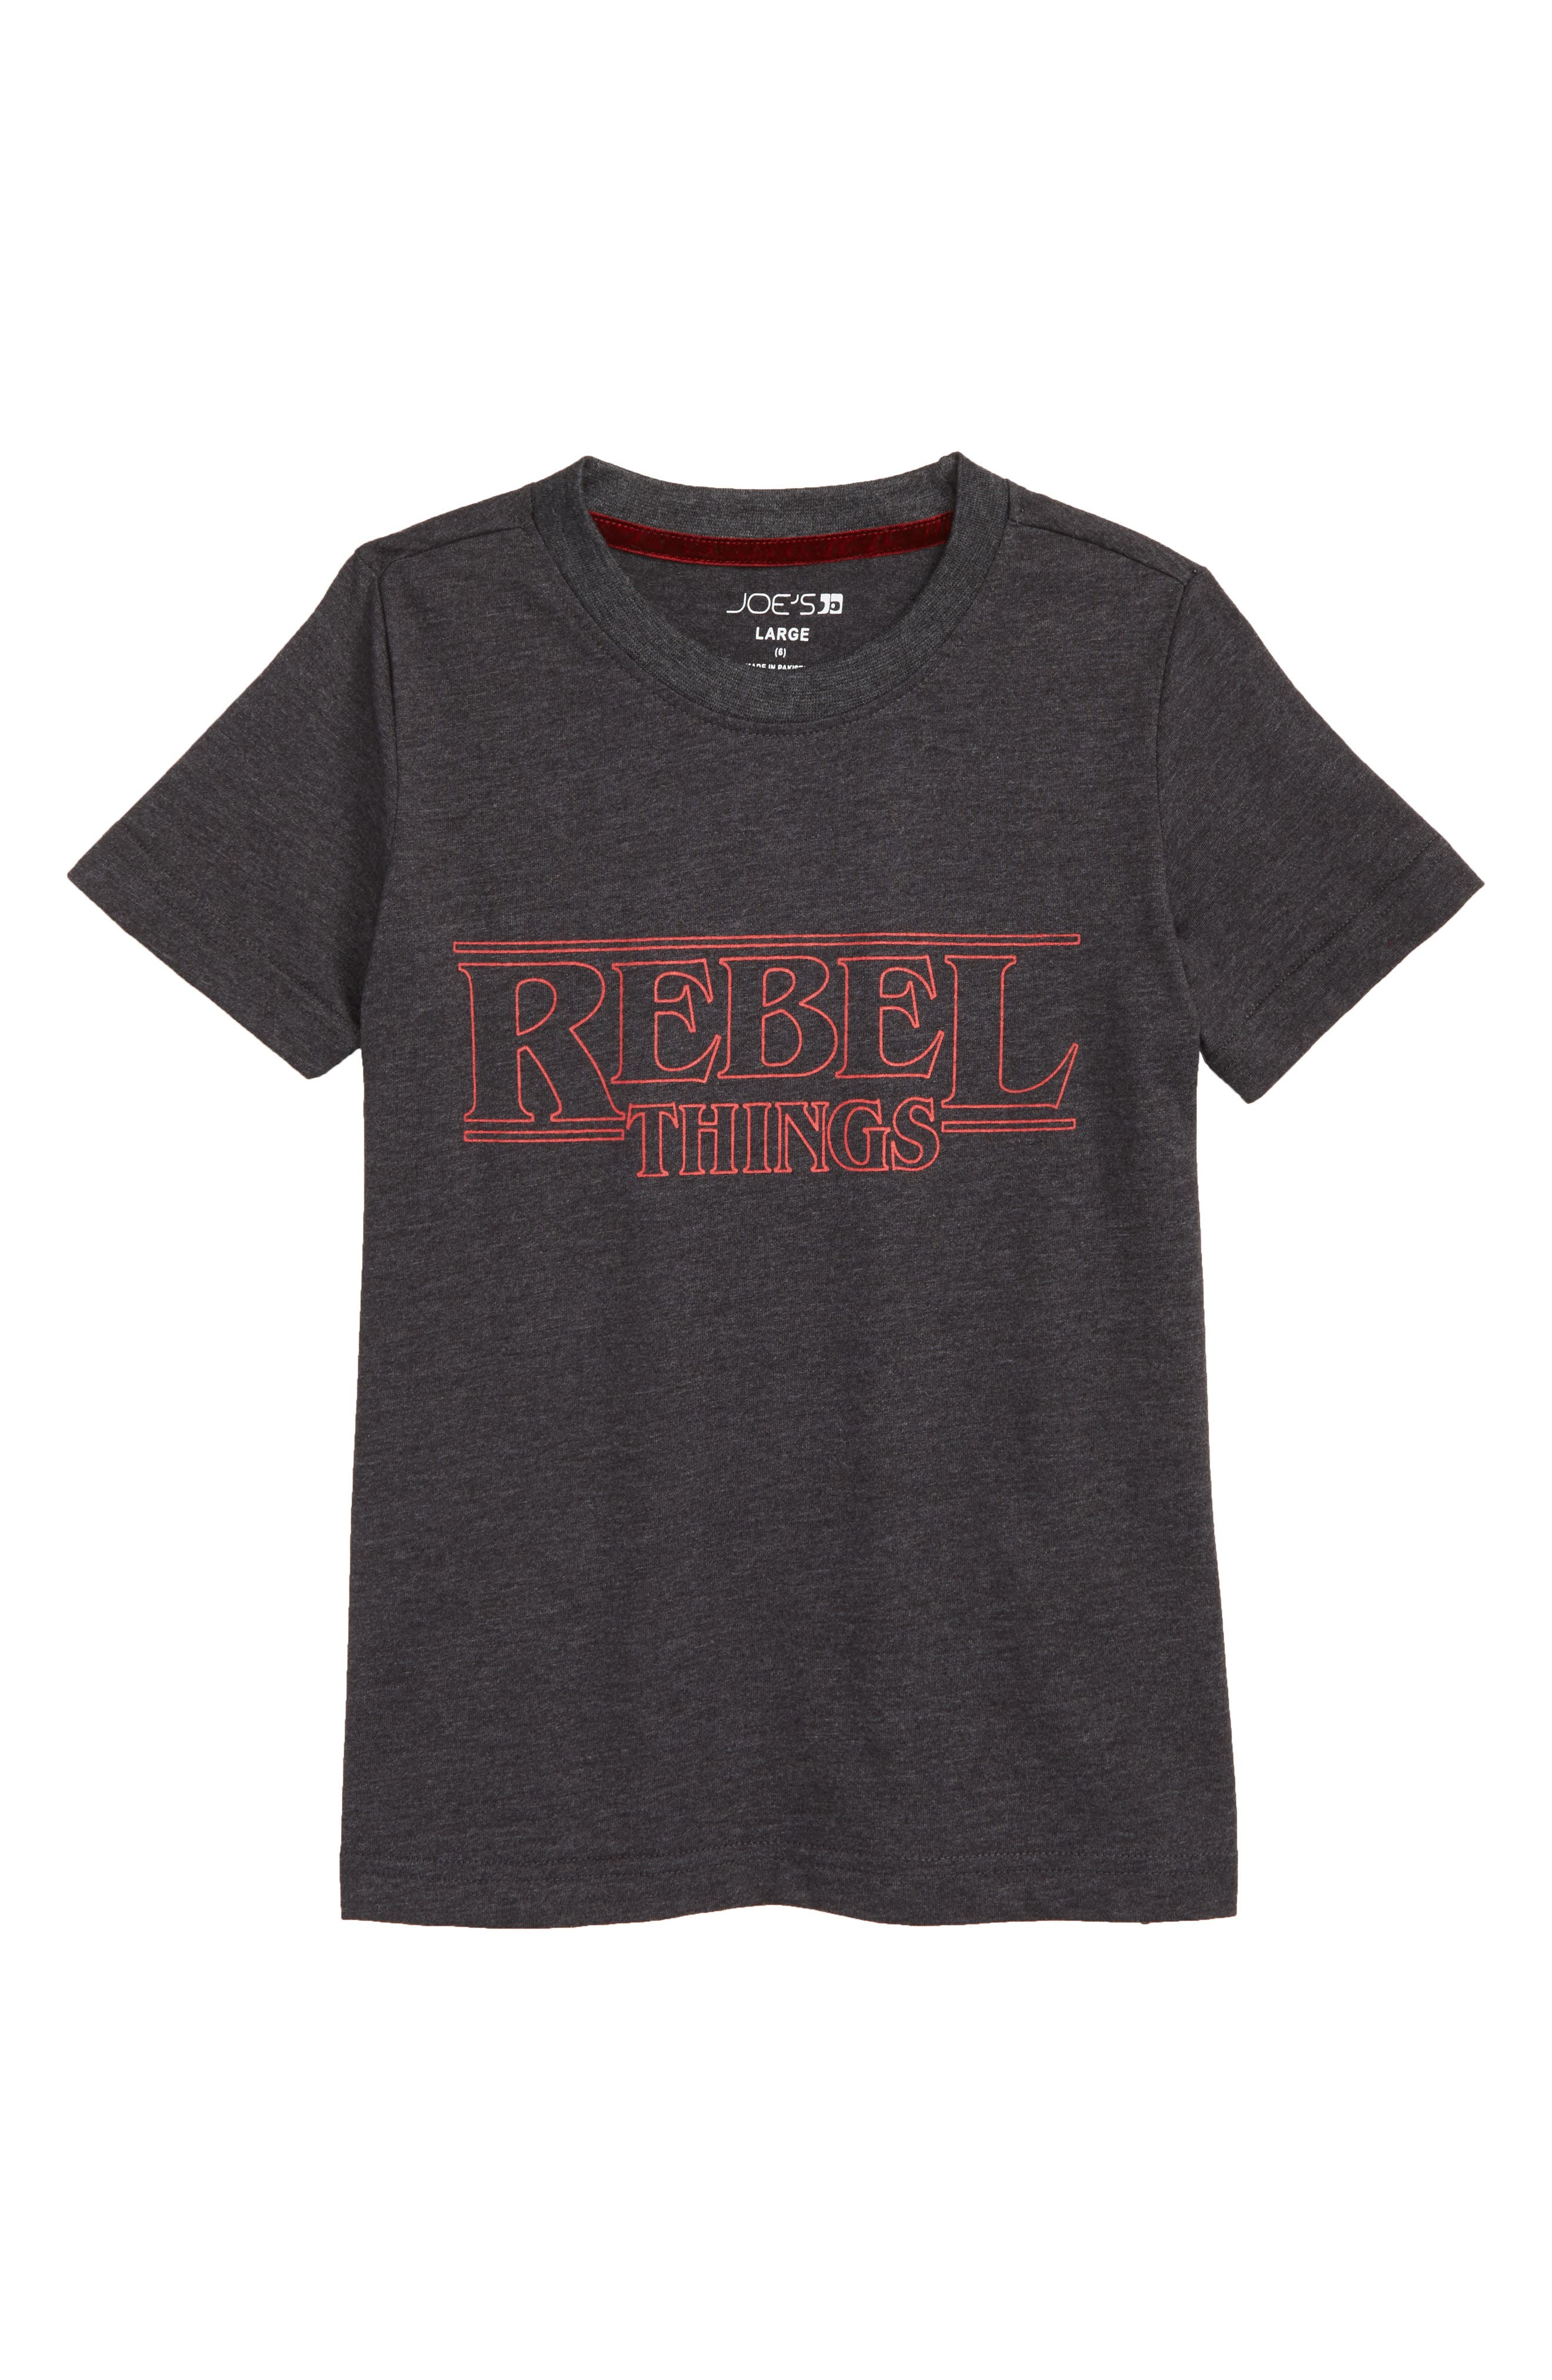 Rebel Things Graphic T-Shirt,                             Main thumbnail 1, color,                             CHARCOAL HEATHER